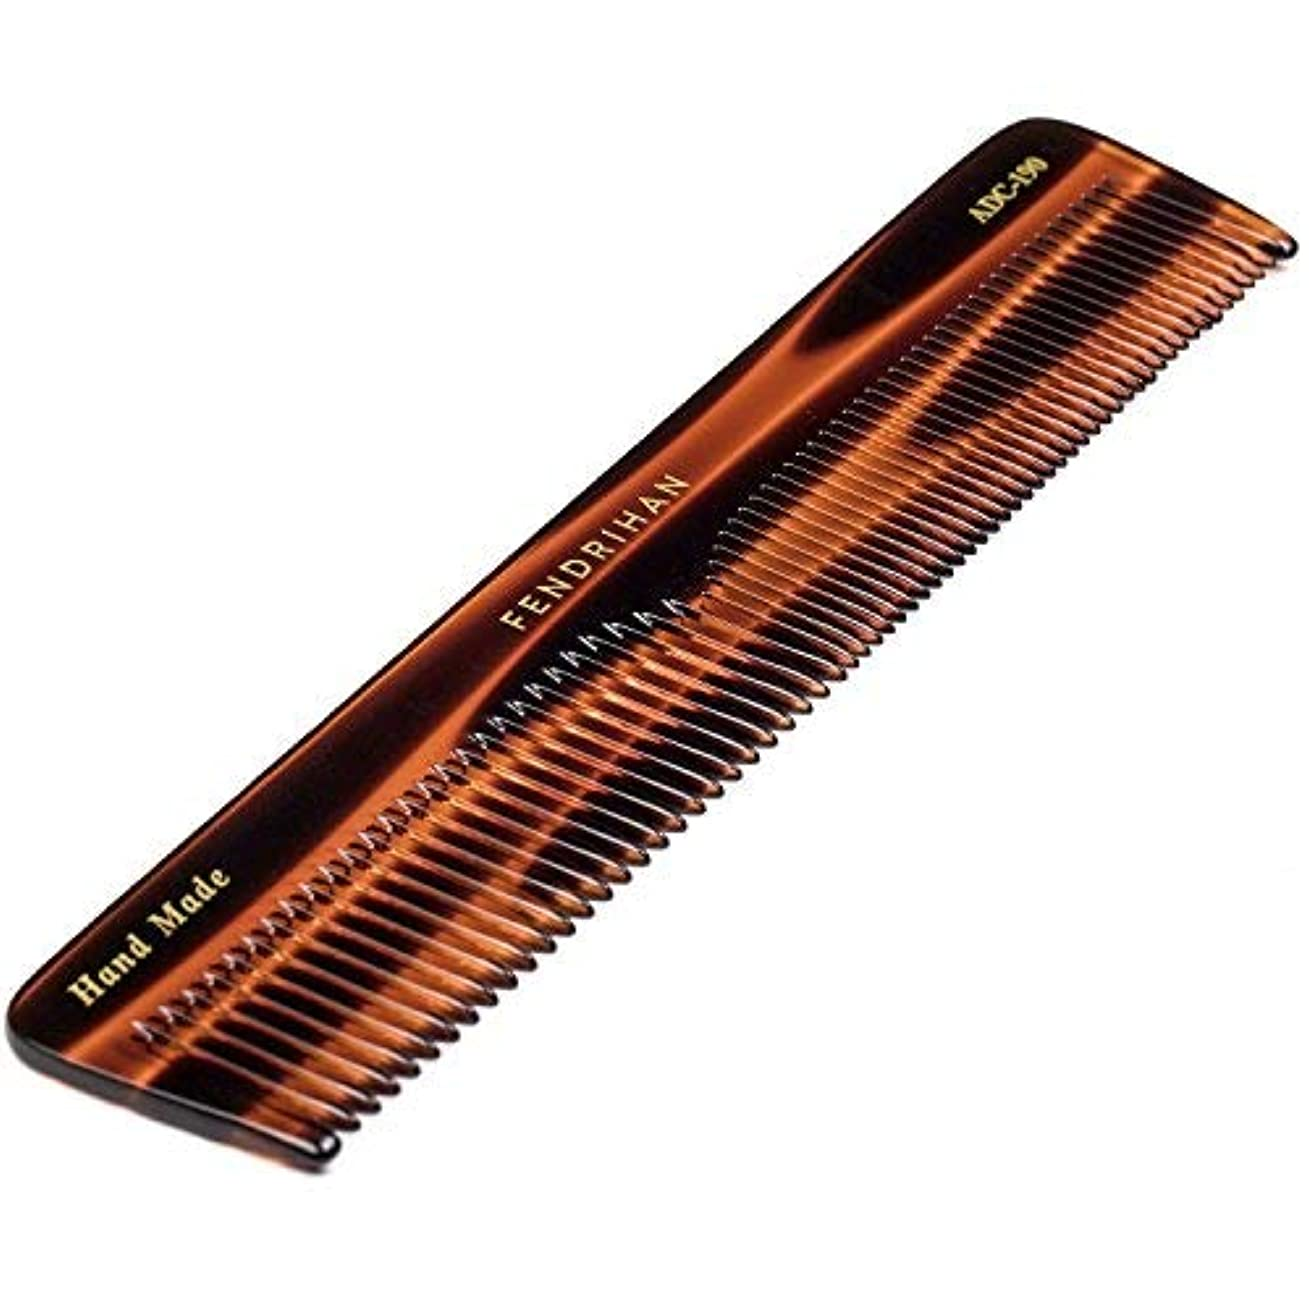 出席選ぶ破滅的なFendrihan Hand Finished Large Double Tooth Comb for Men, Faux Tortoise (7.3 Inches) [並行輸入品]